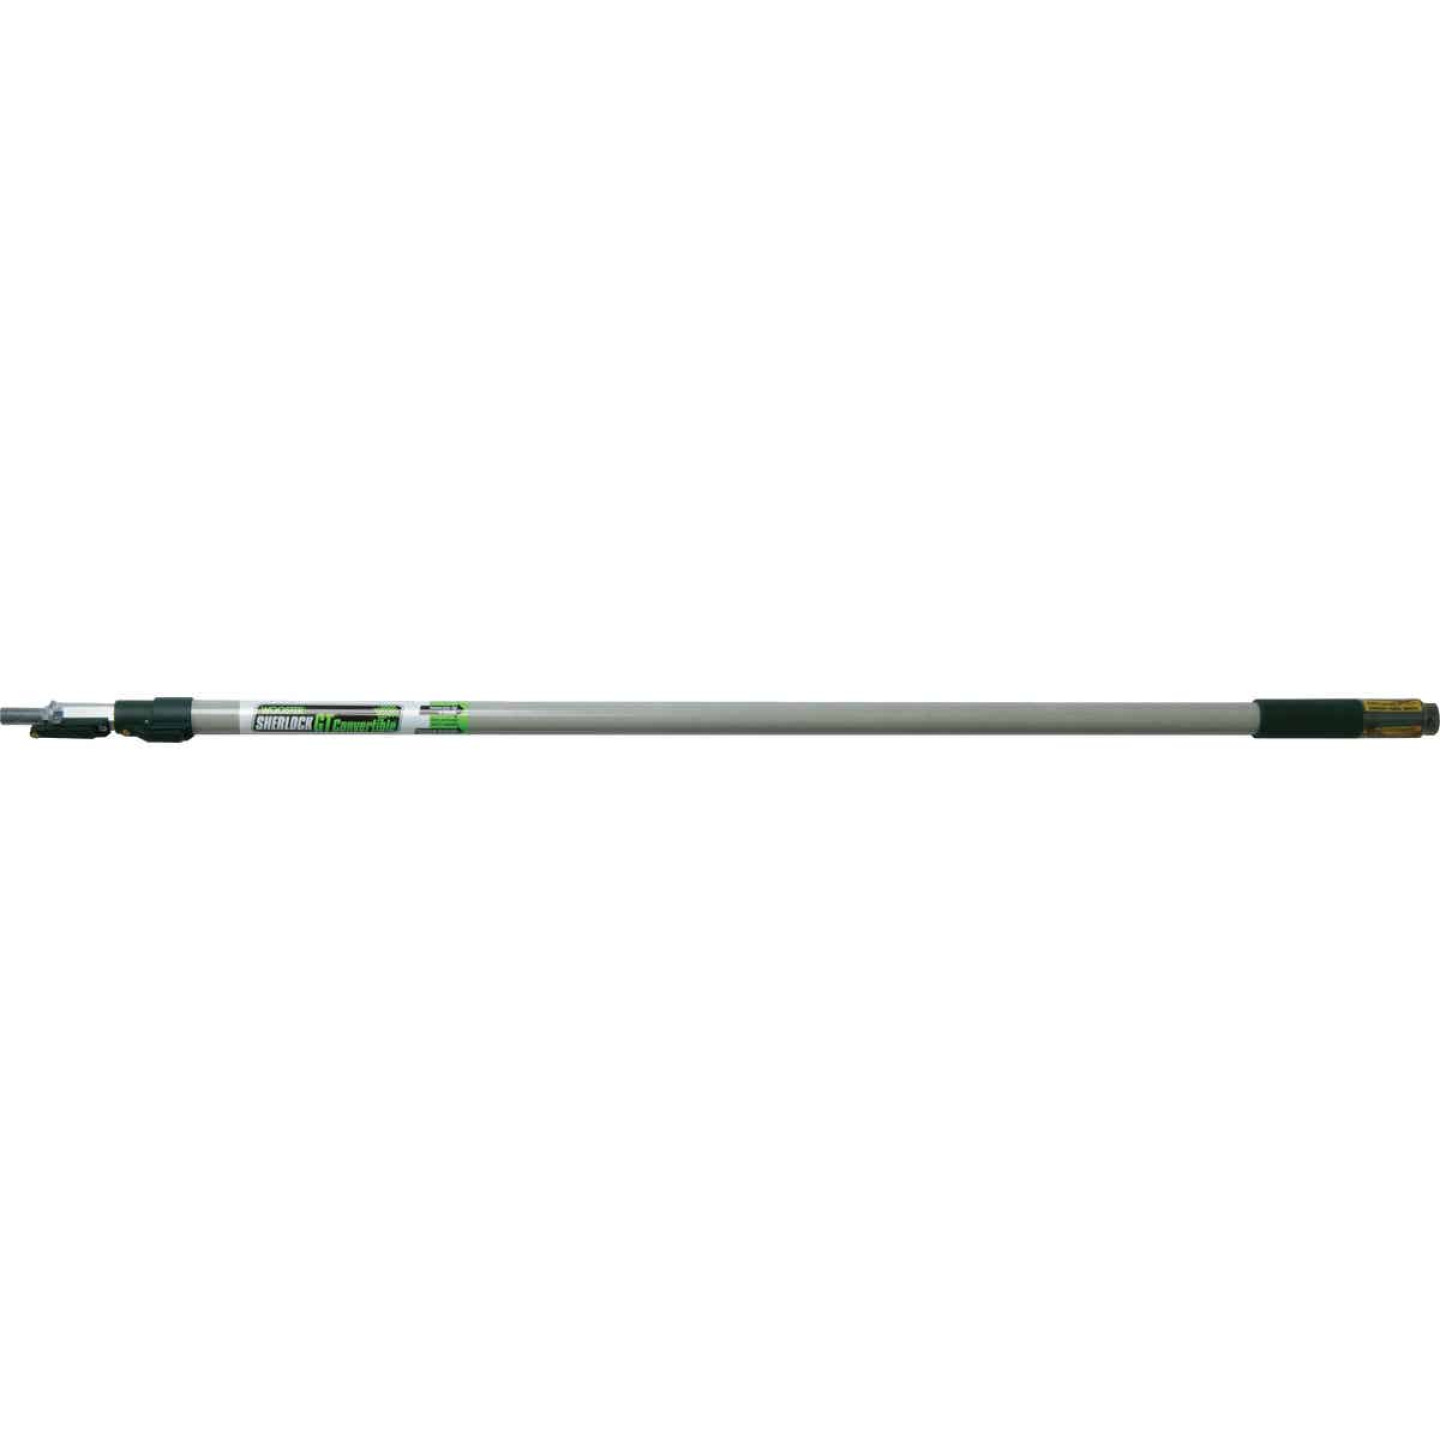 Wooster Sherlock GT 4 Ft. To 8 Ft. Convertible Extension Pole Image 1